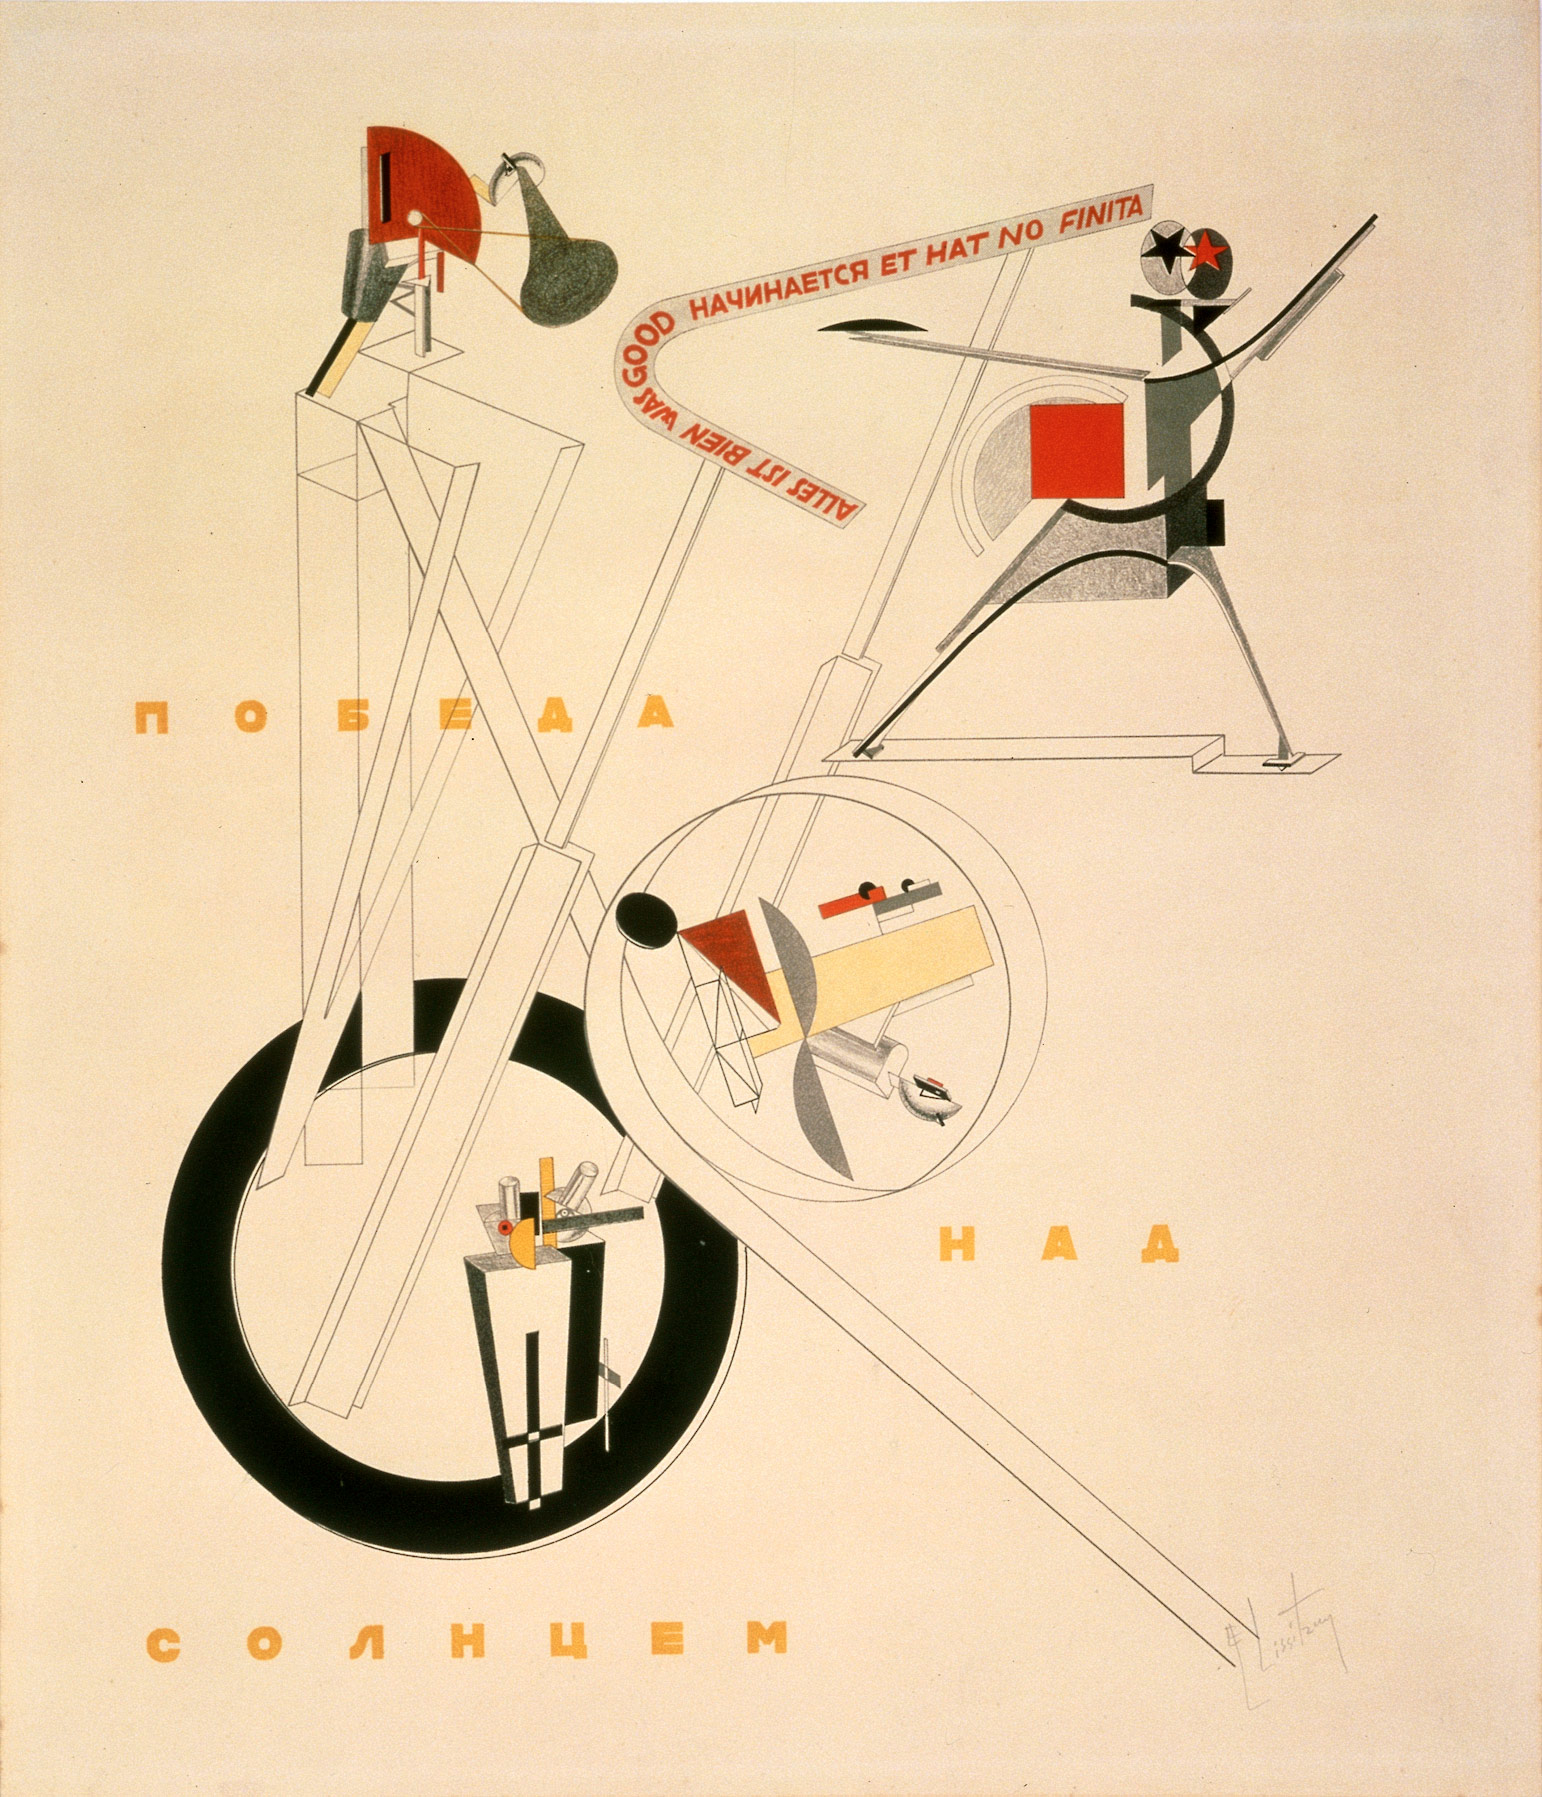 616--El-Lissitzsky,-Figures-from-The-Three-Dimensional-Design-of-the-Electro-Mechanical-Show-'Victory-over-the-Sun',-1923-i